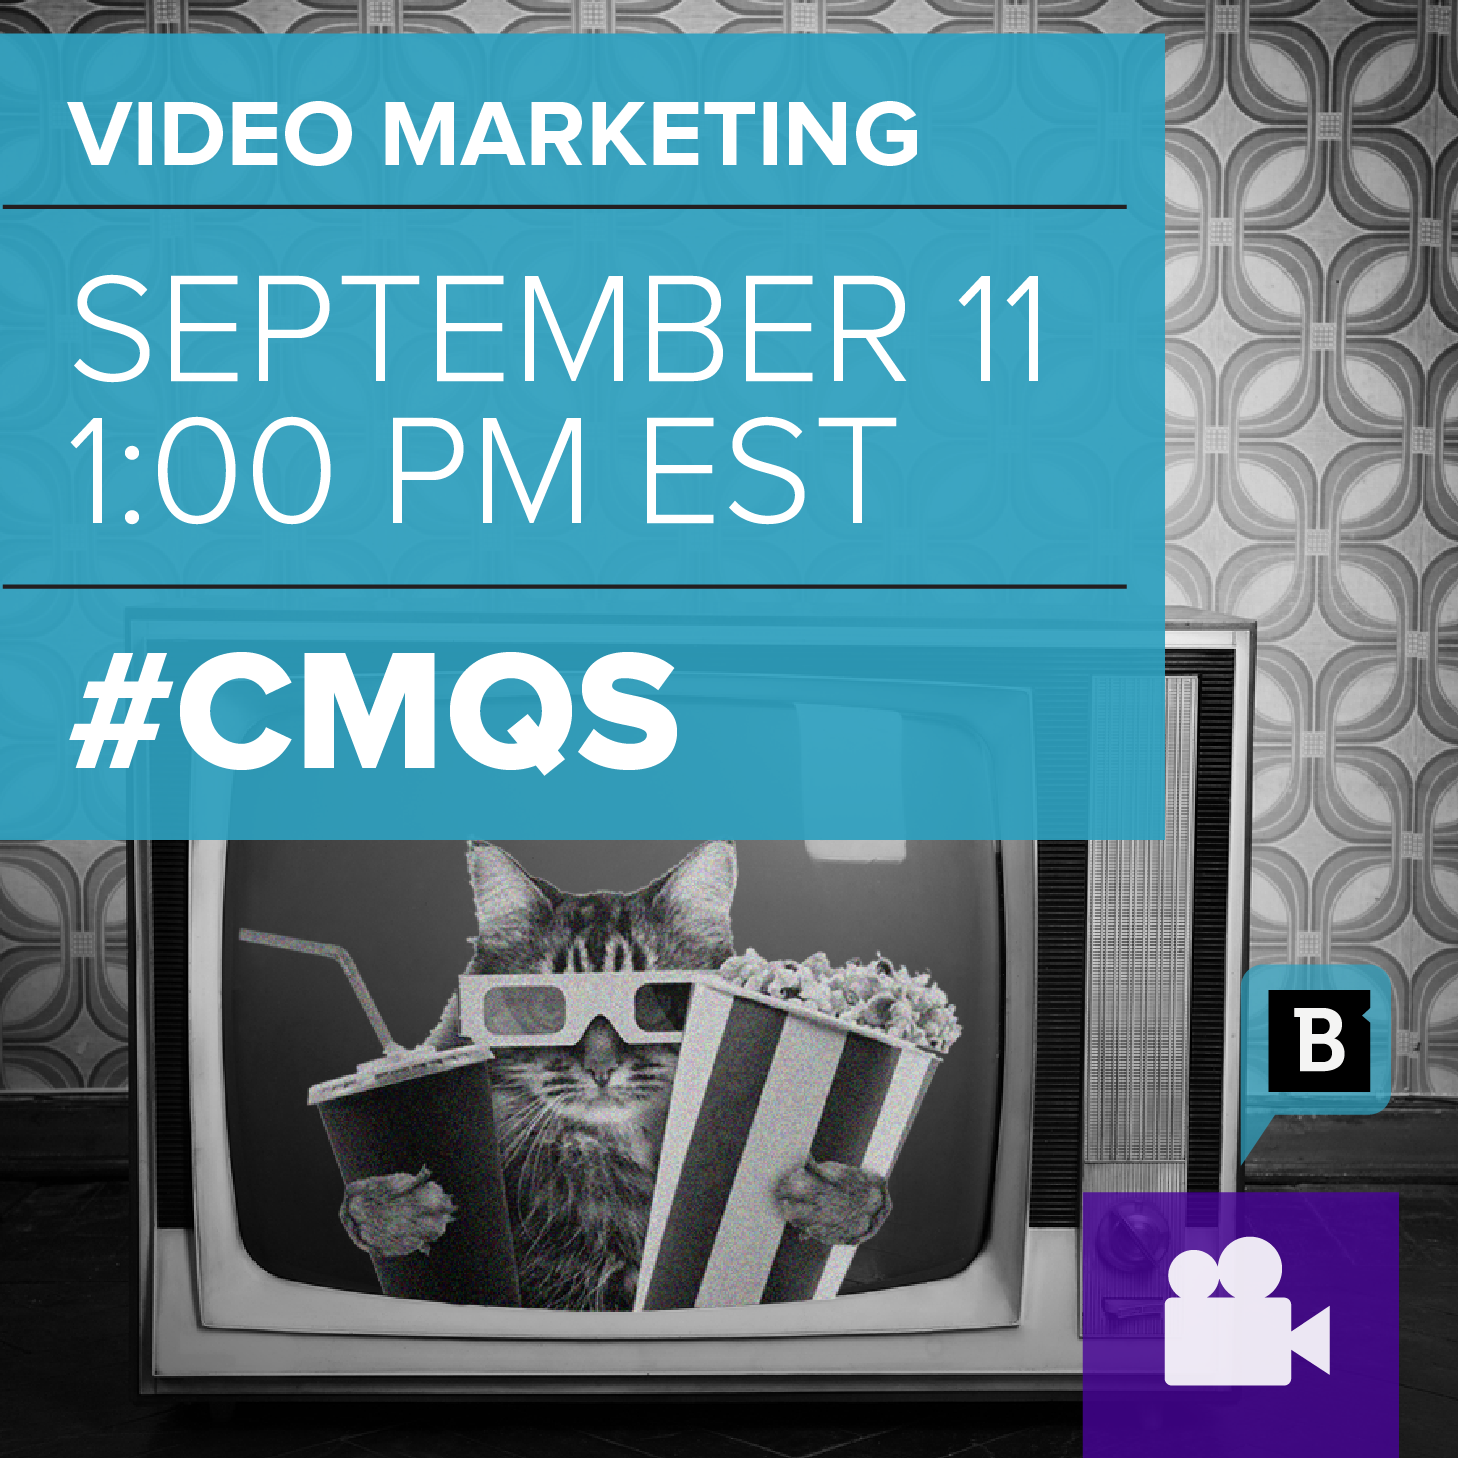 Brafton's Video Webinar #cmQs discuss video content.